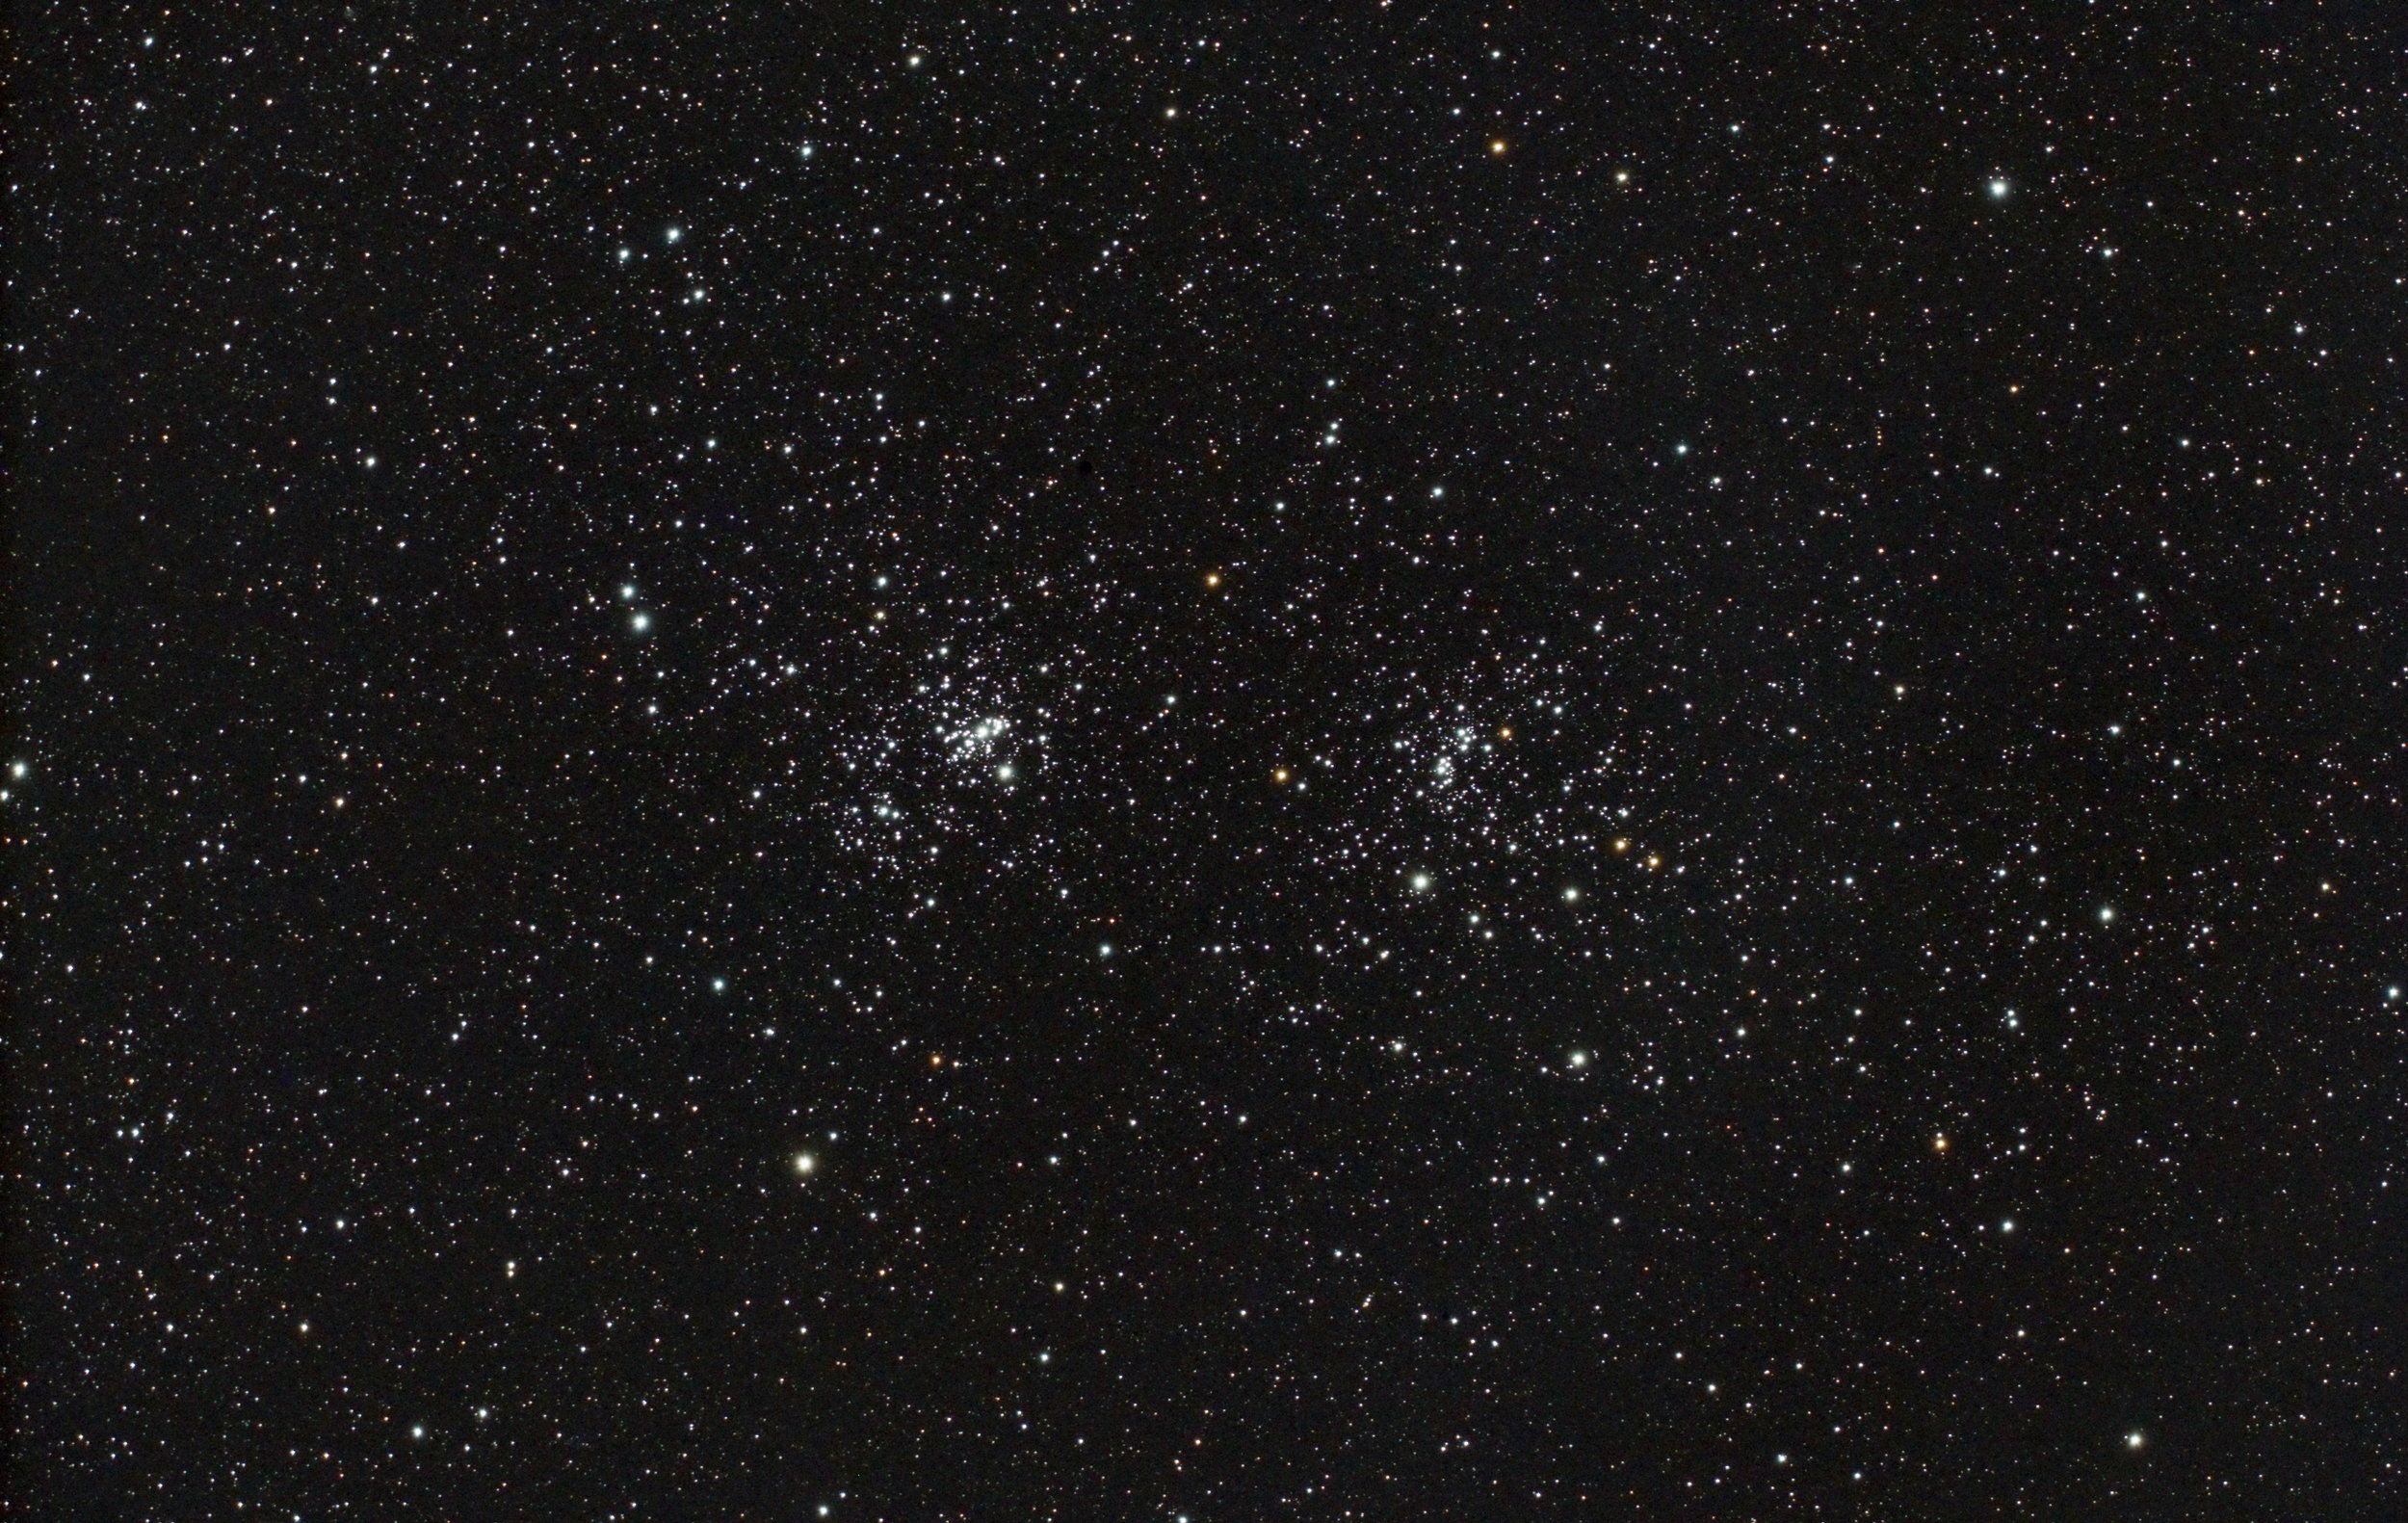 NGC 869 The Double Cluster